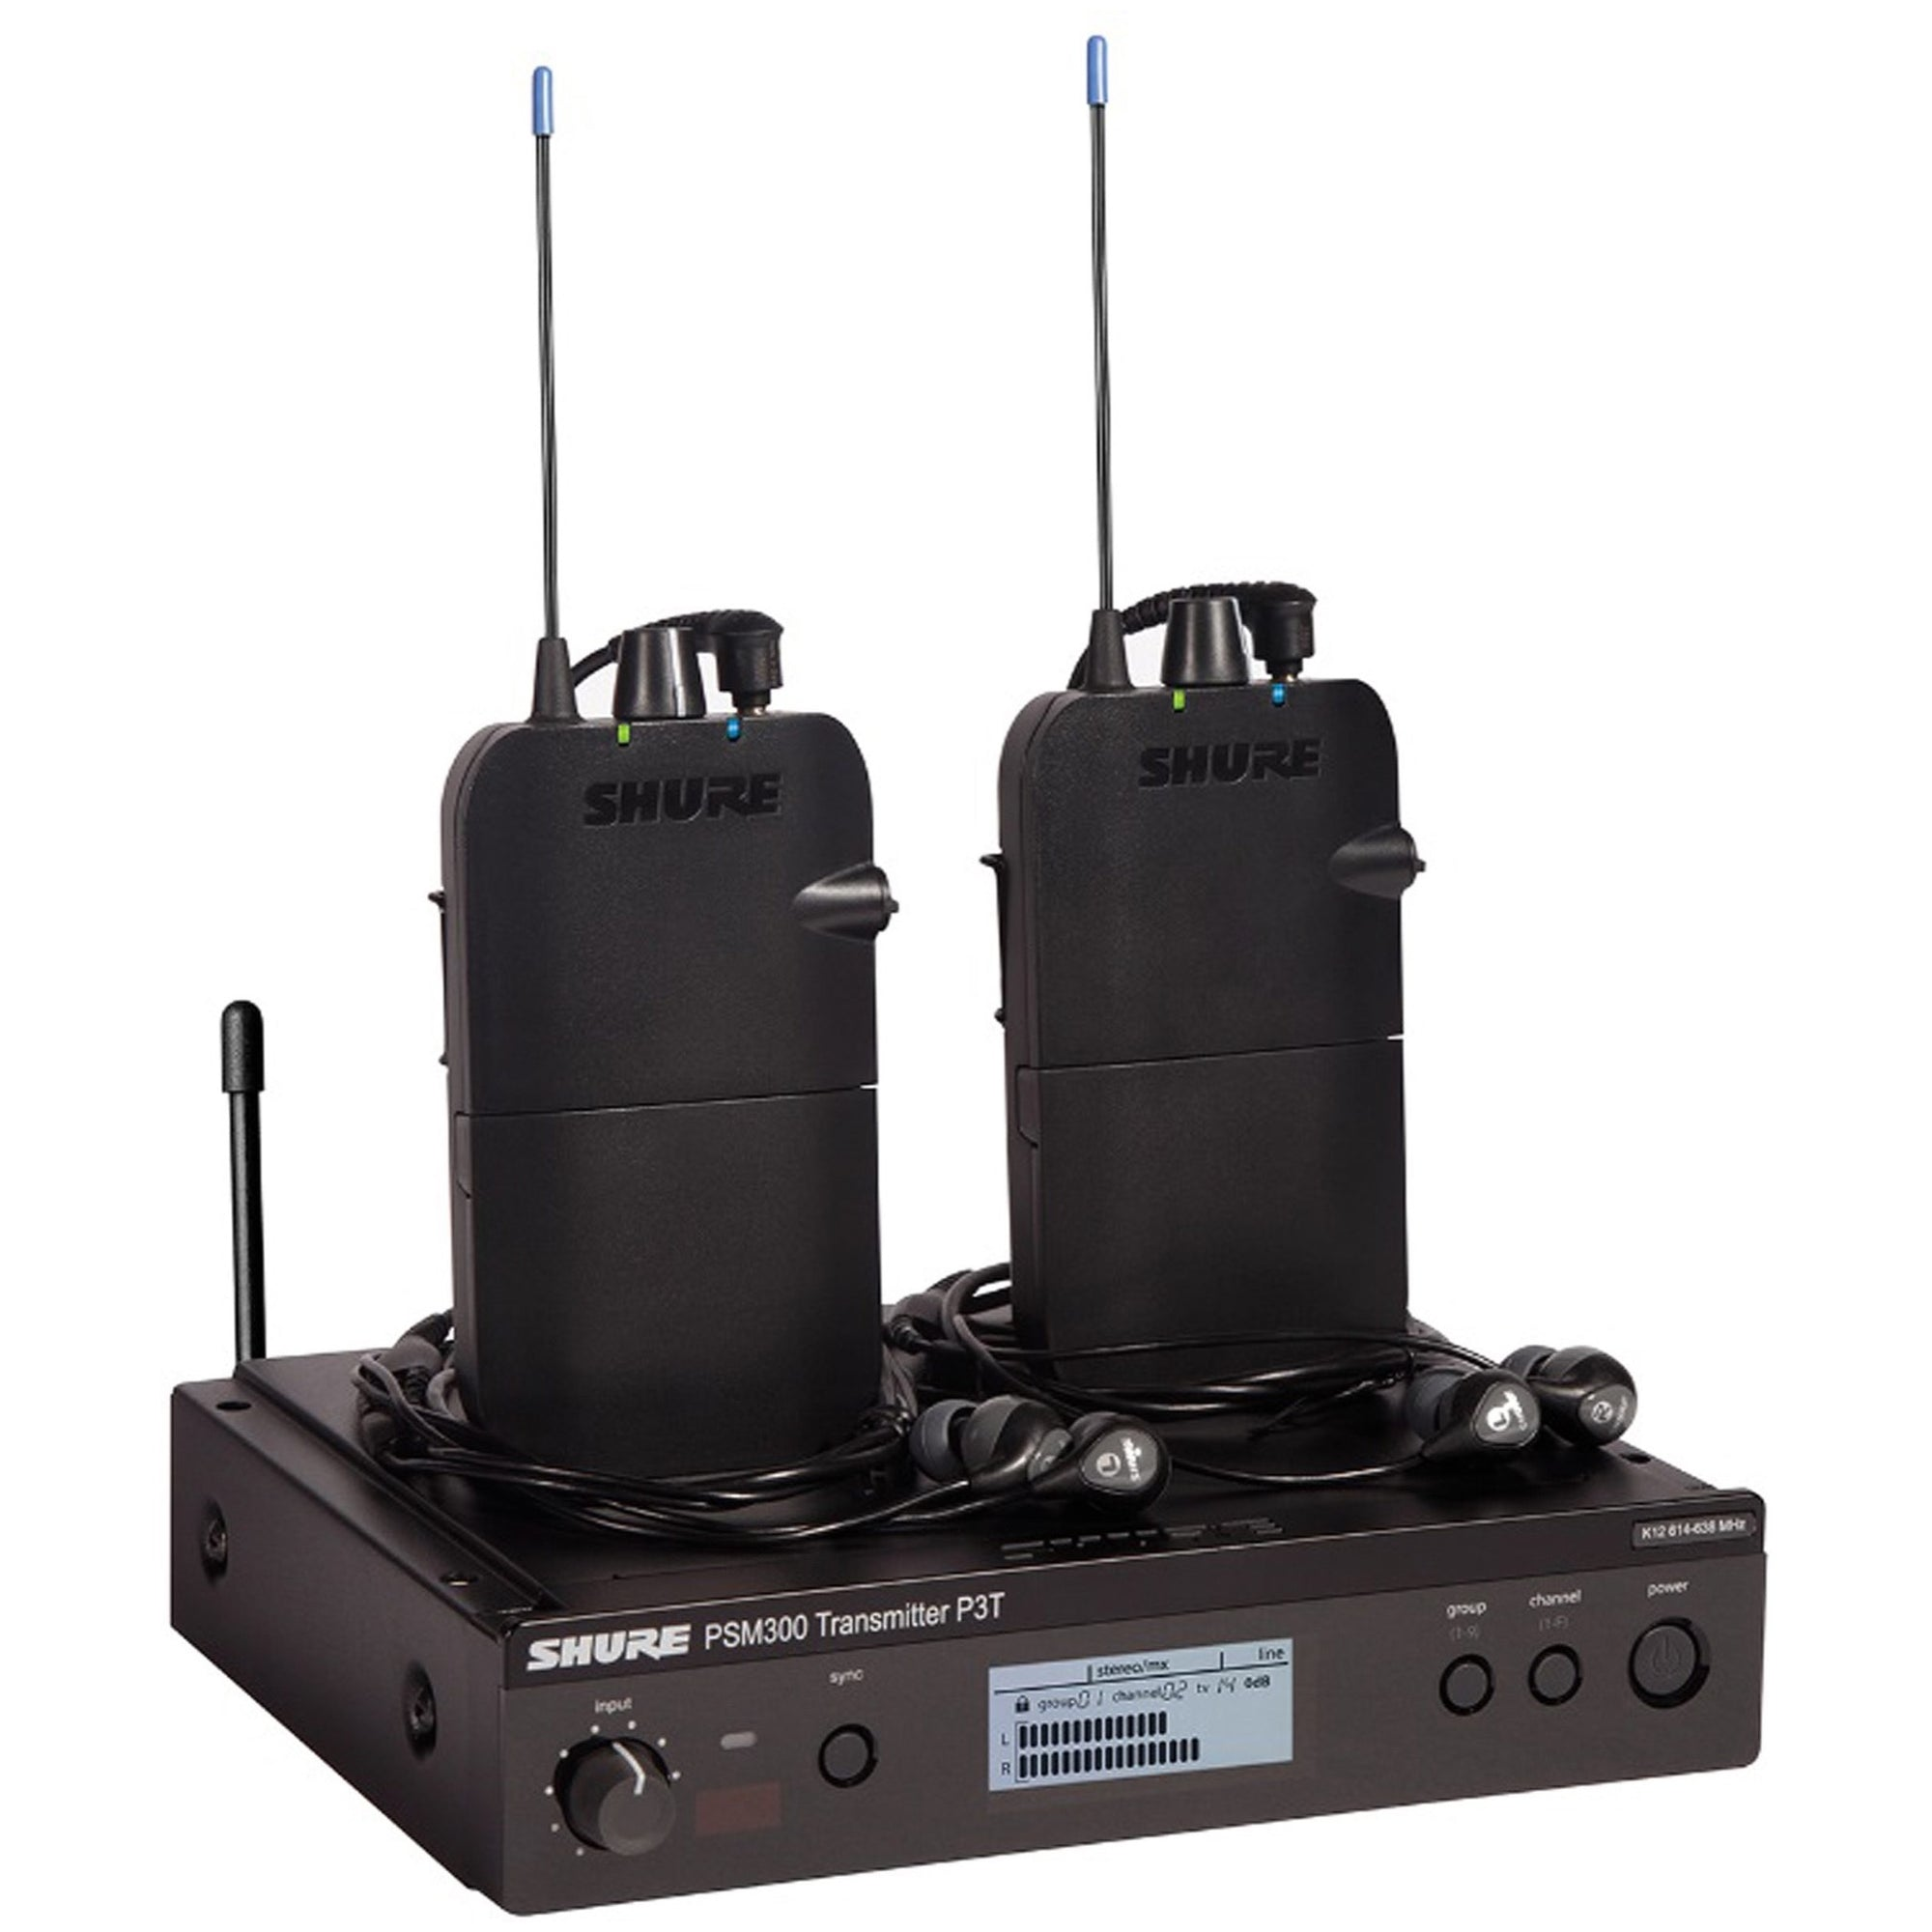 Shure PSM 300 Twin Pack IEM Wireless In-Ear Monitor System with SE112 Earphones, Band G20 (488.150 - 511.850 MHz)